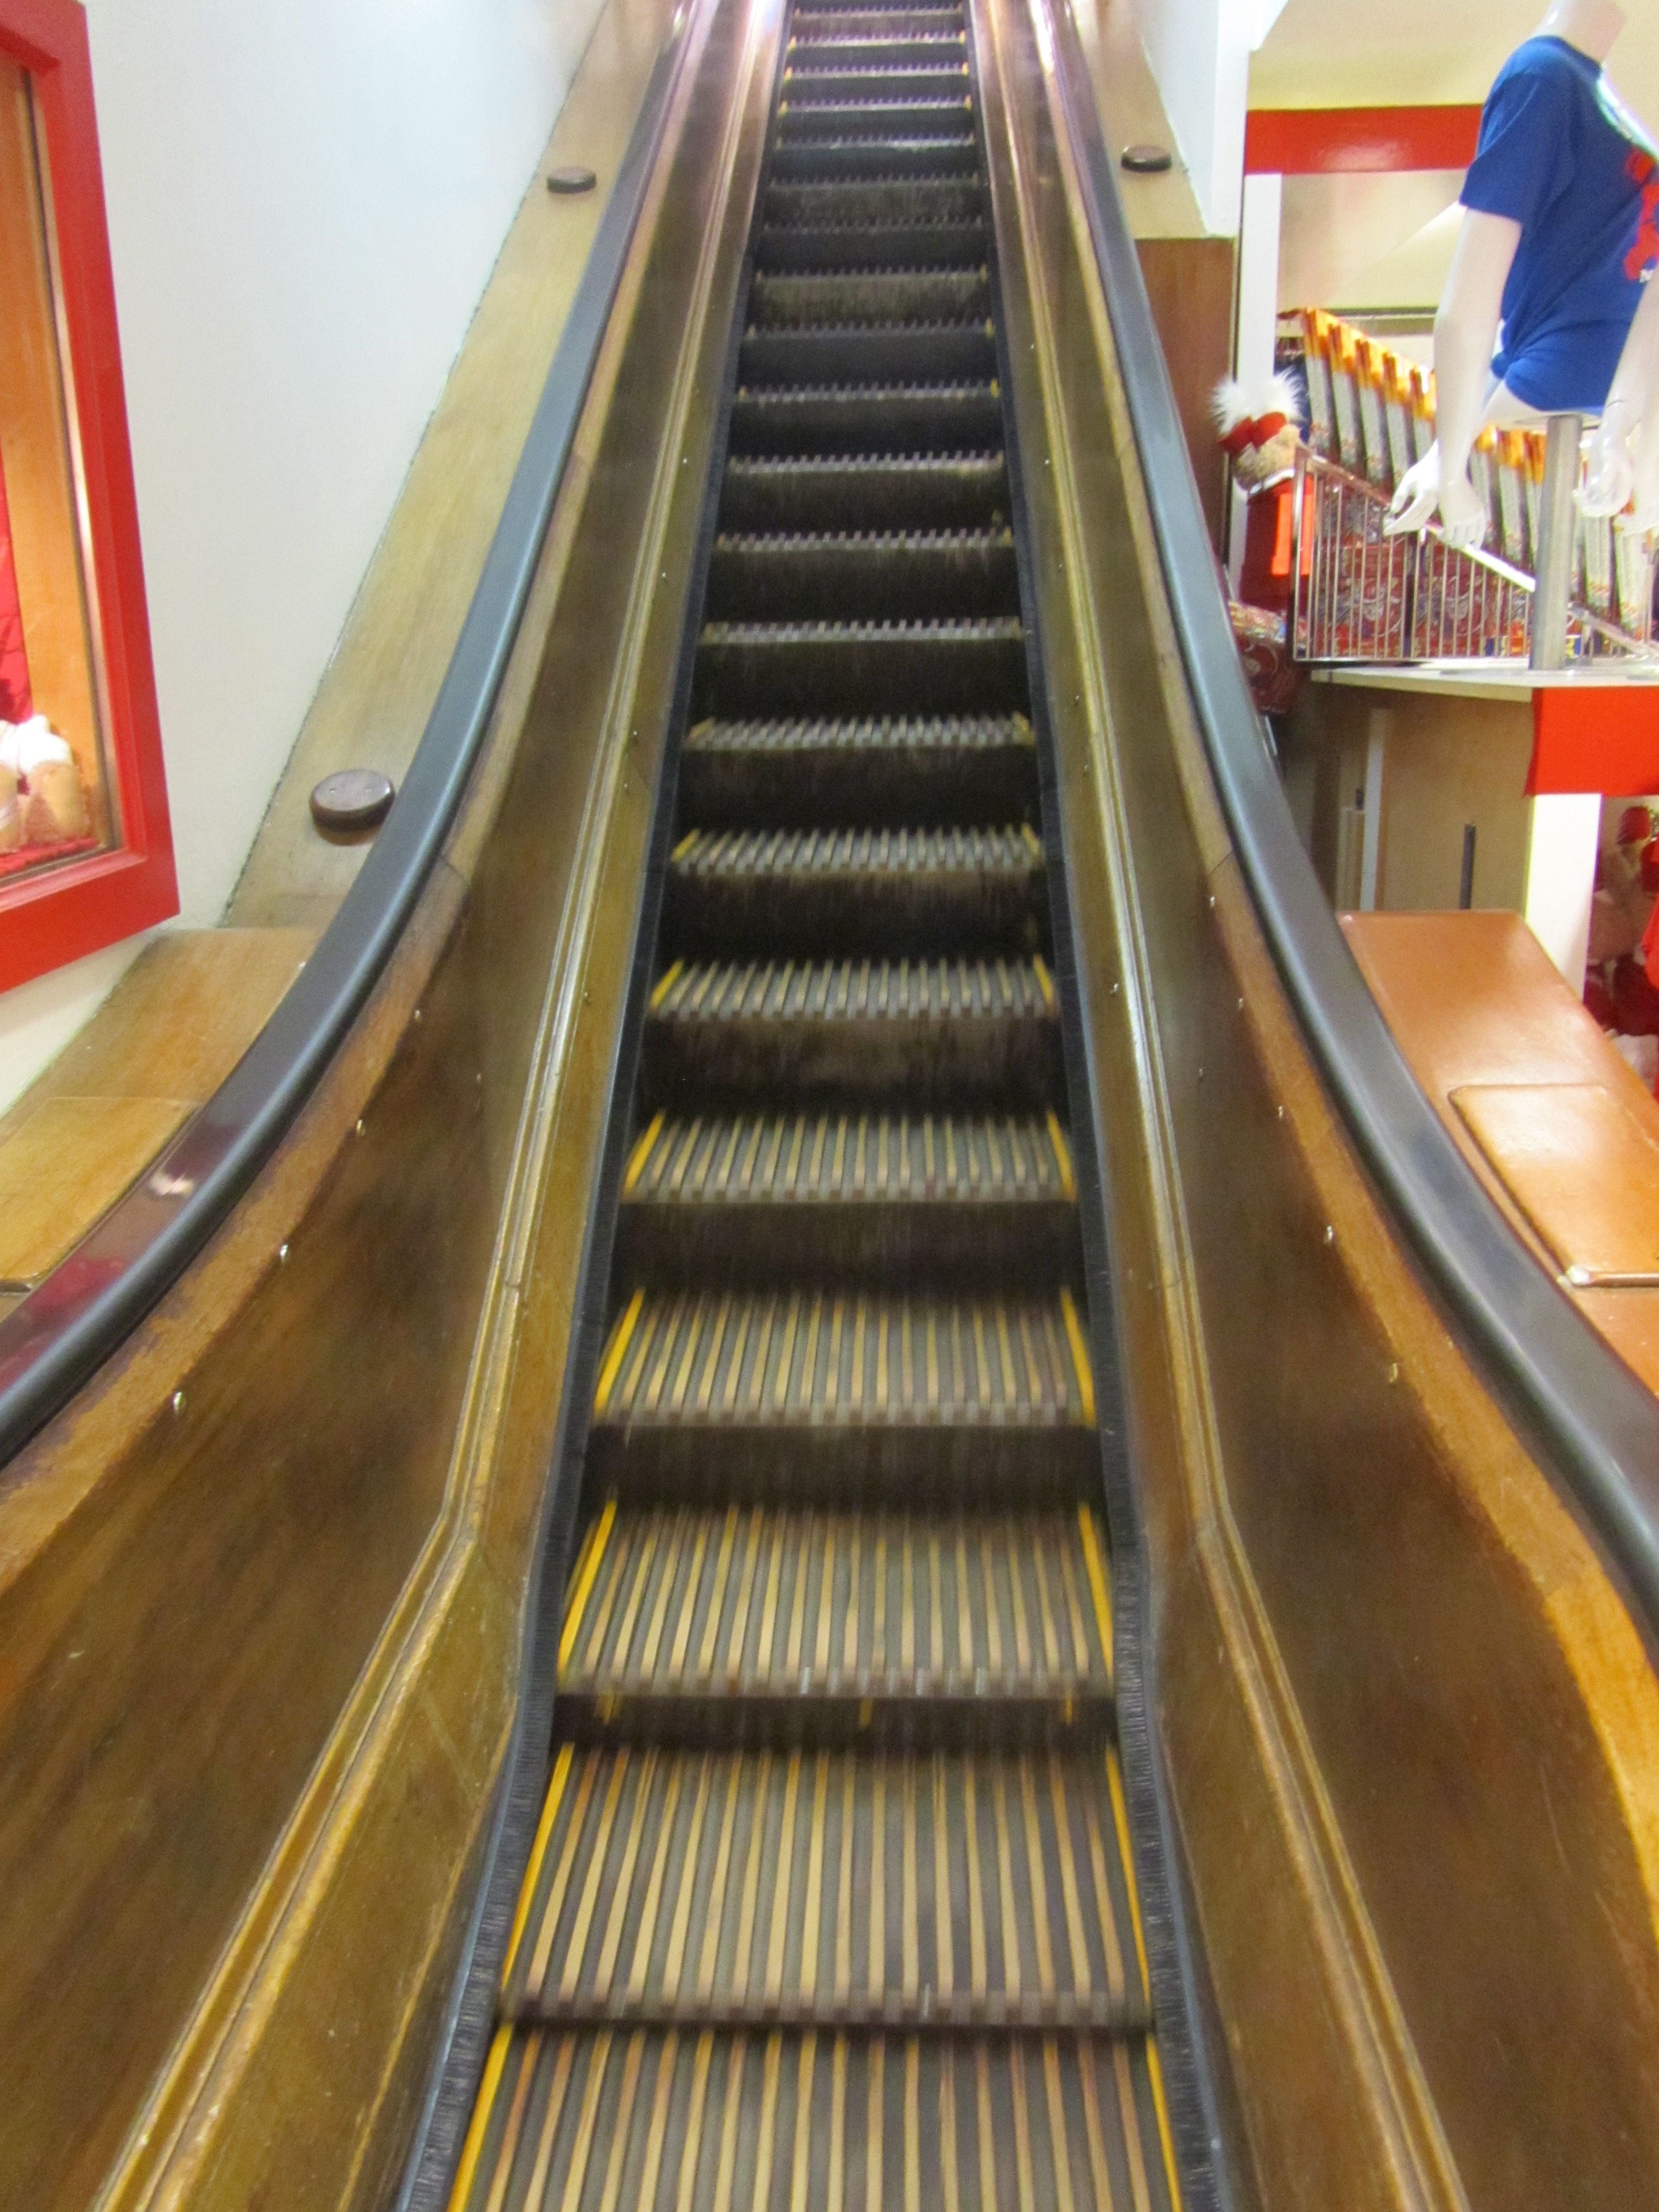 Wooden Escalator At Macy S Ny Imagine The People That Have Home Nyc I New York Escalator